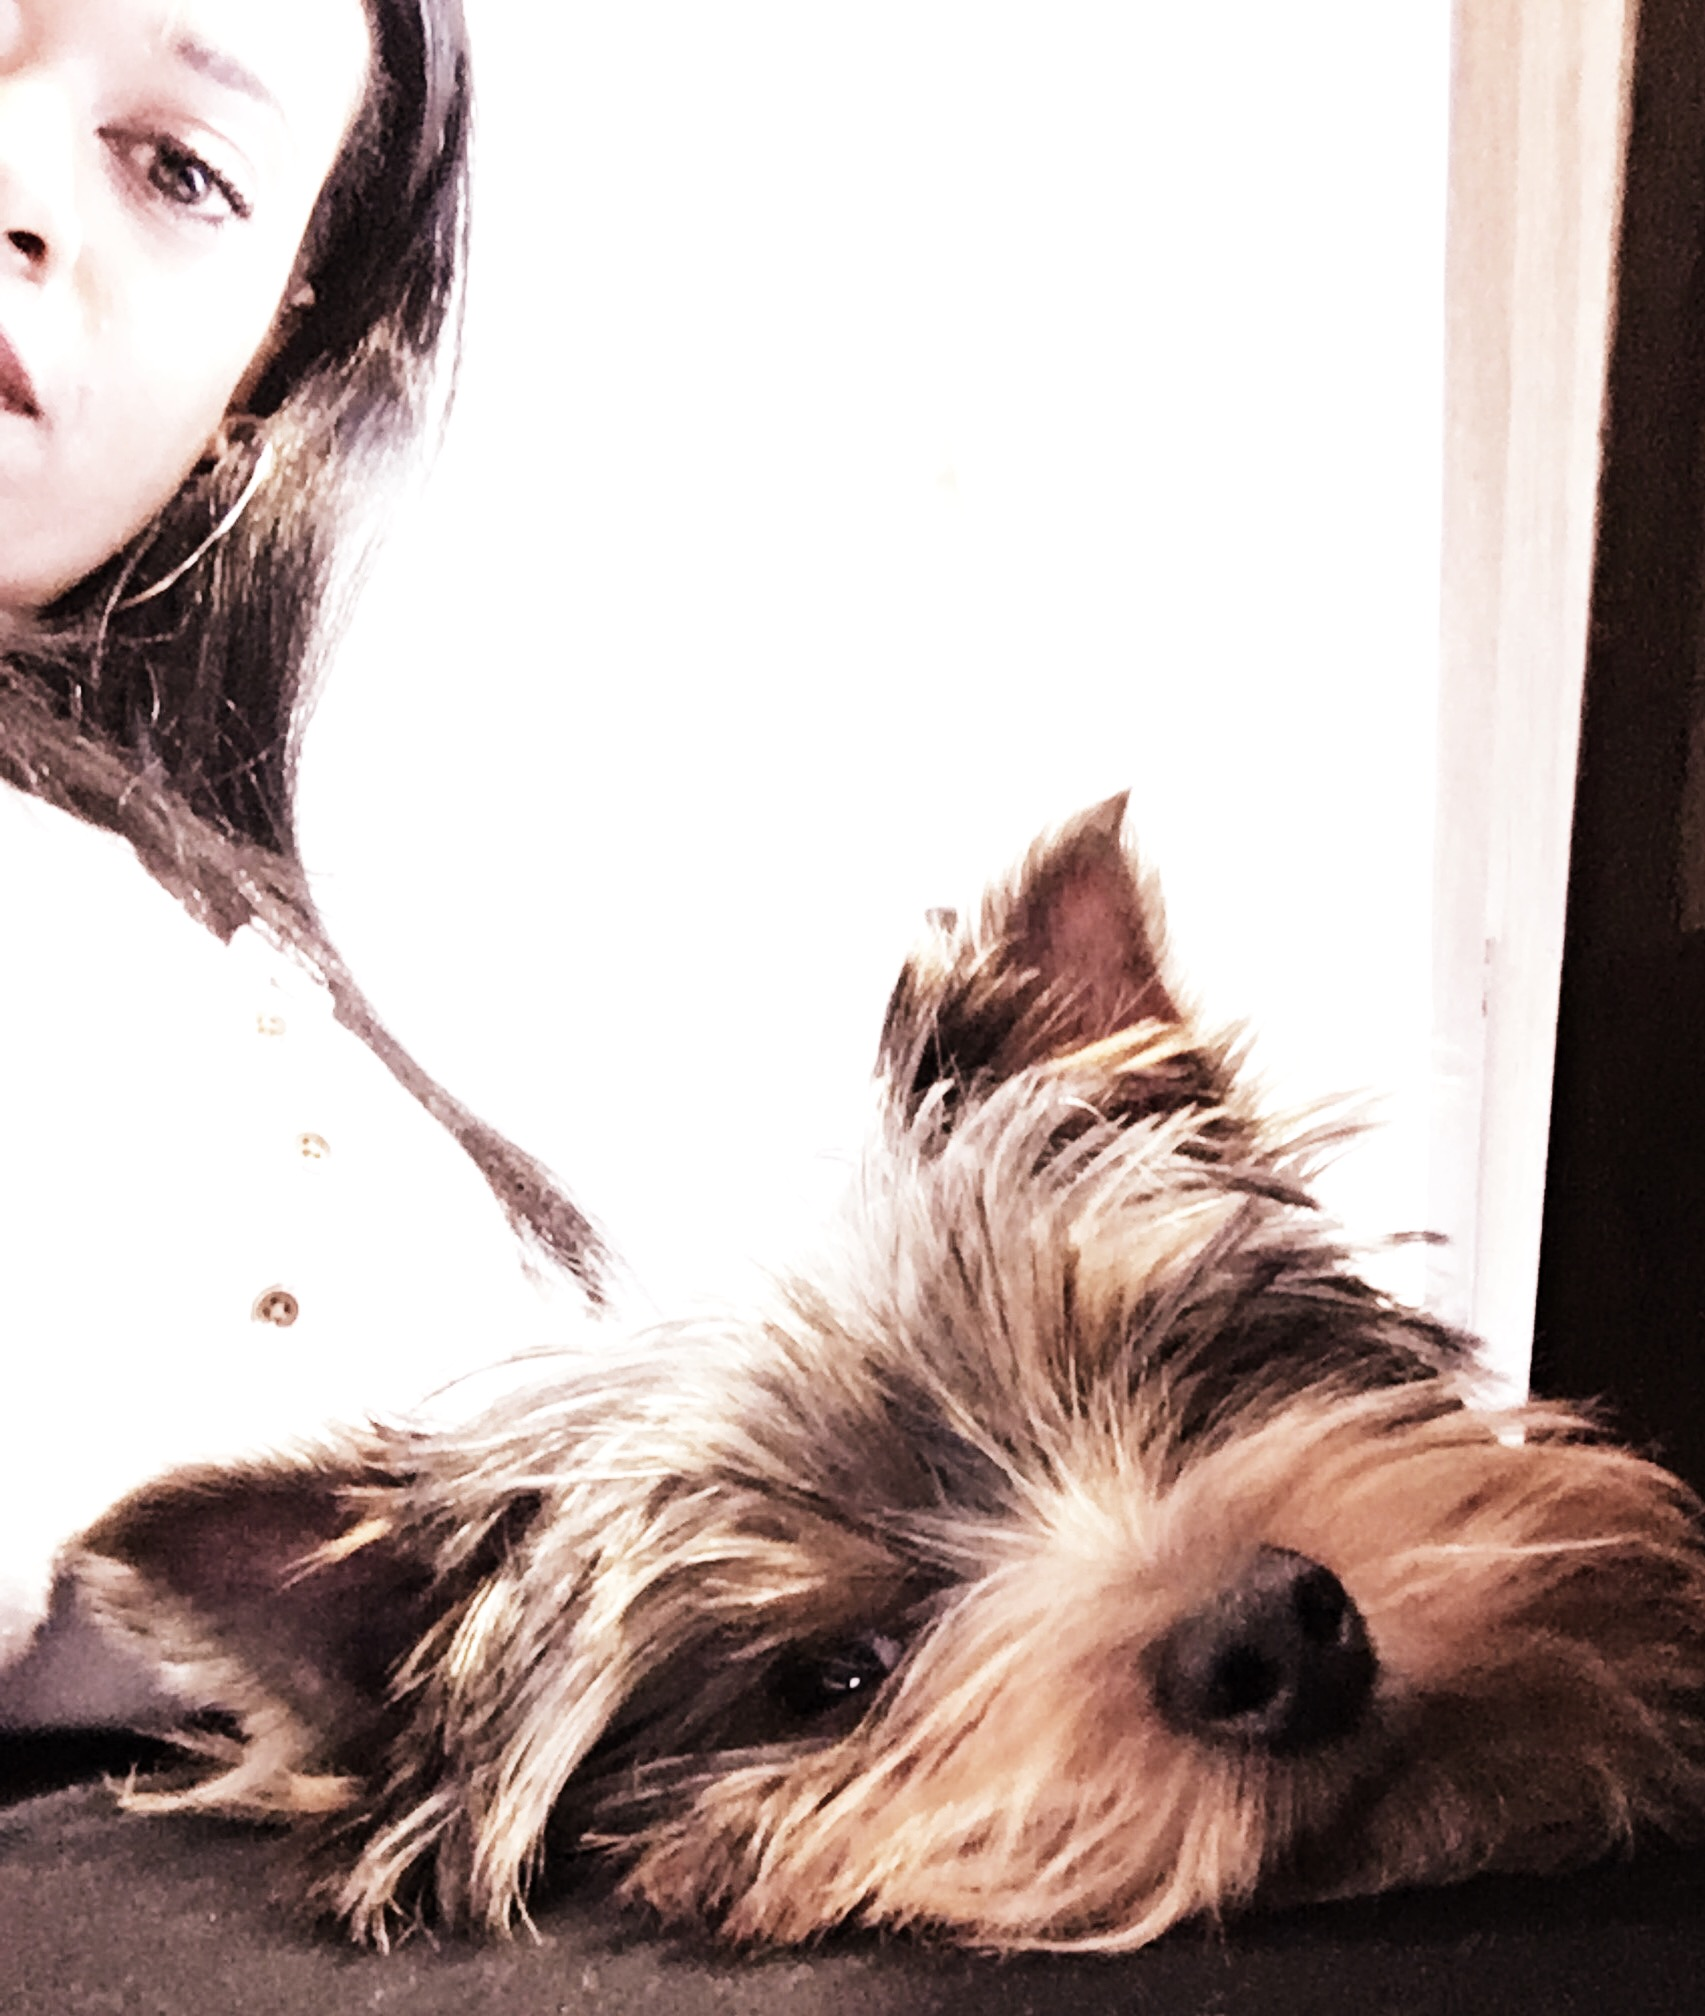 Meet the newest member of the Calligraphy Studio, Charlie Brown. He is the Yorkie that literally lives in my Lap. Cheers!